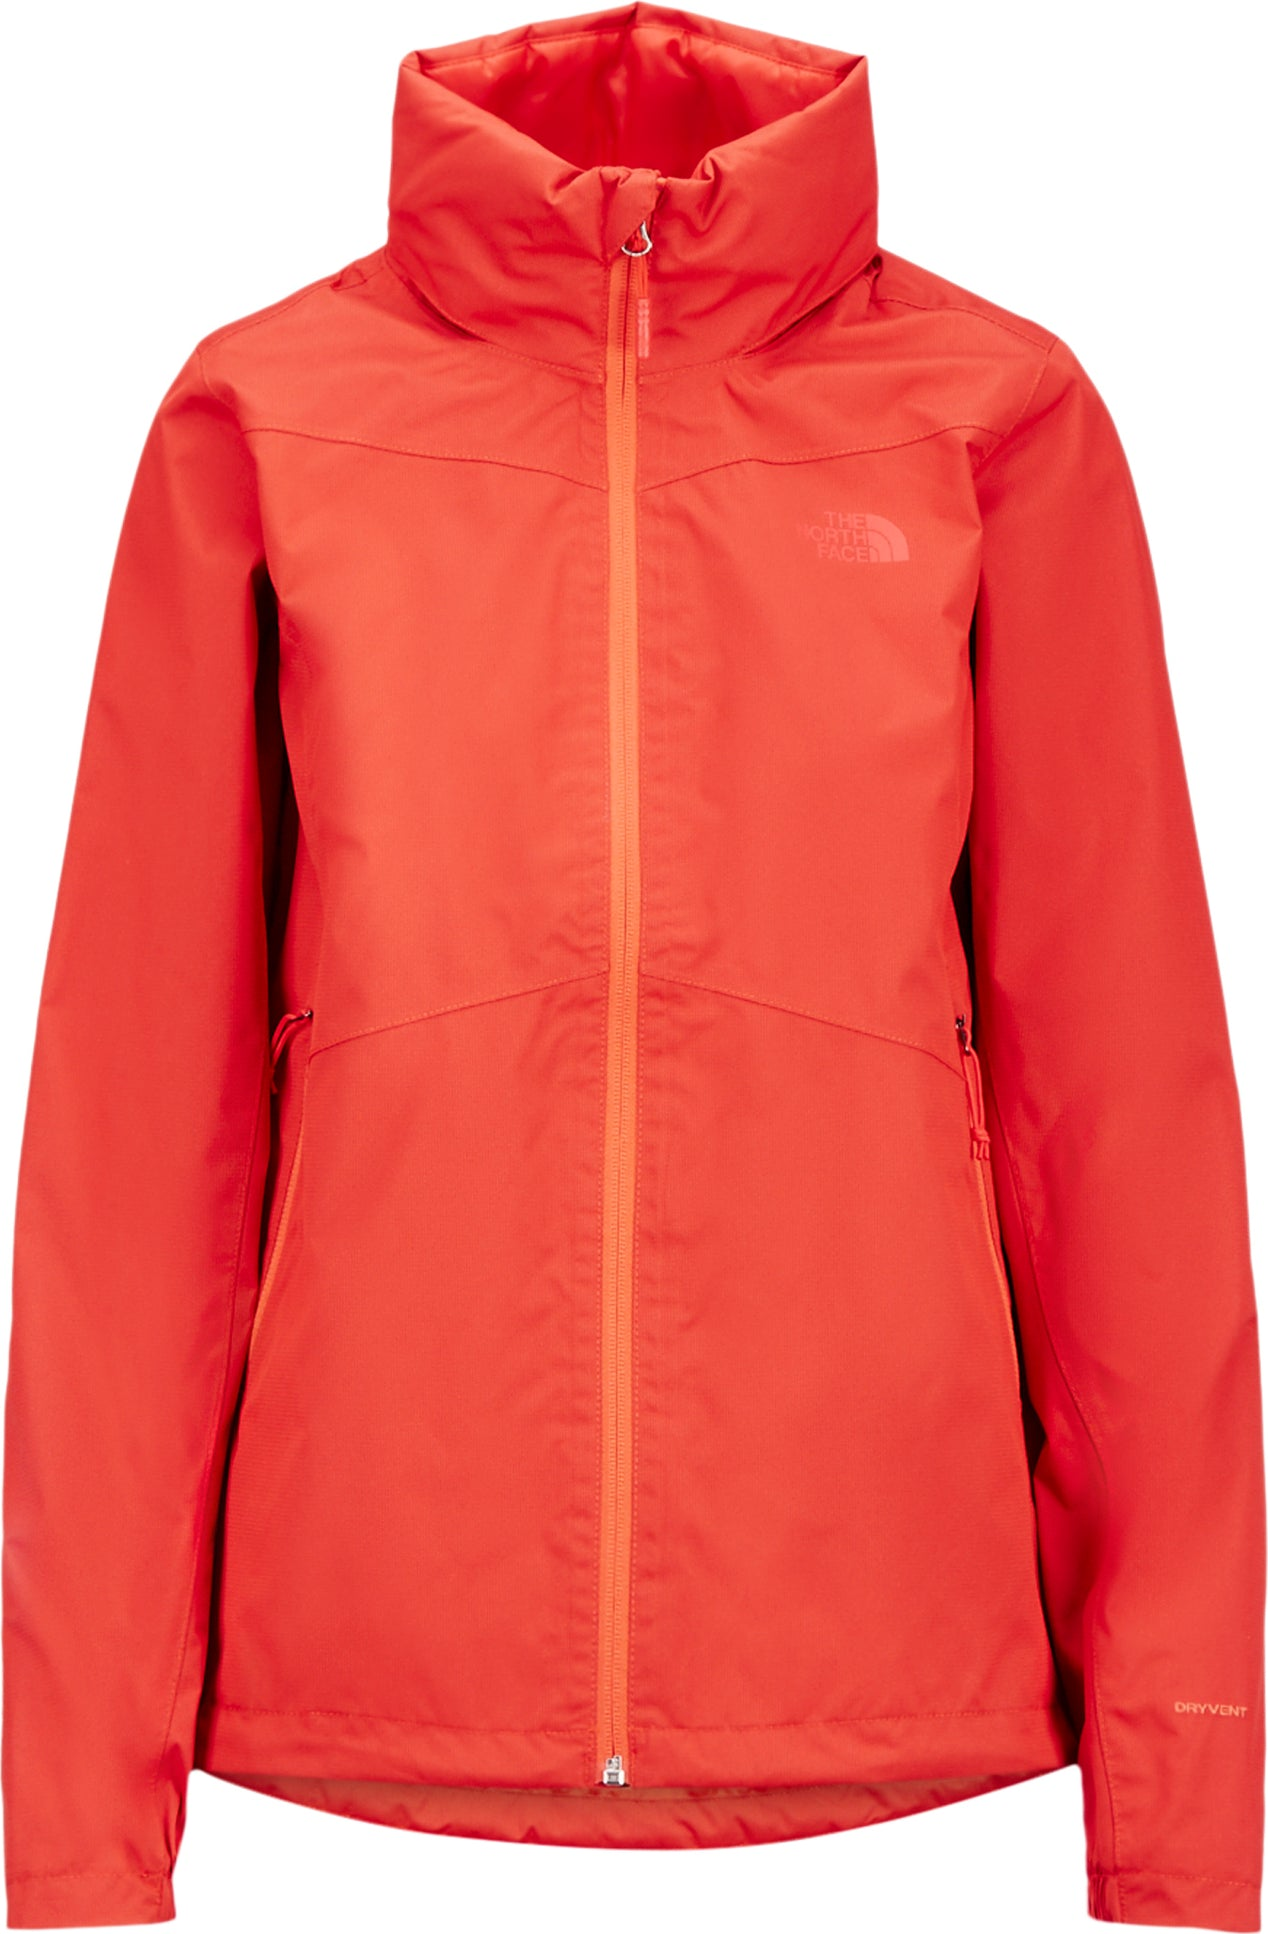 7db19e960 Resolve Plus Jacket - Women's